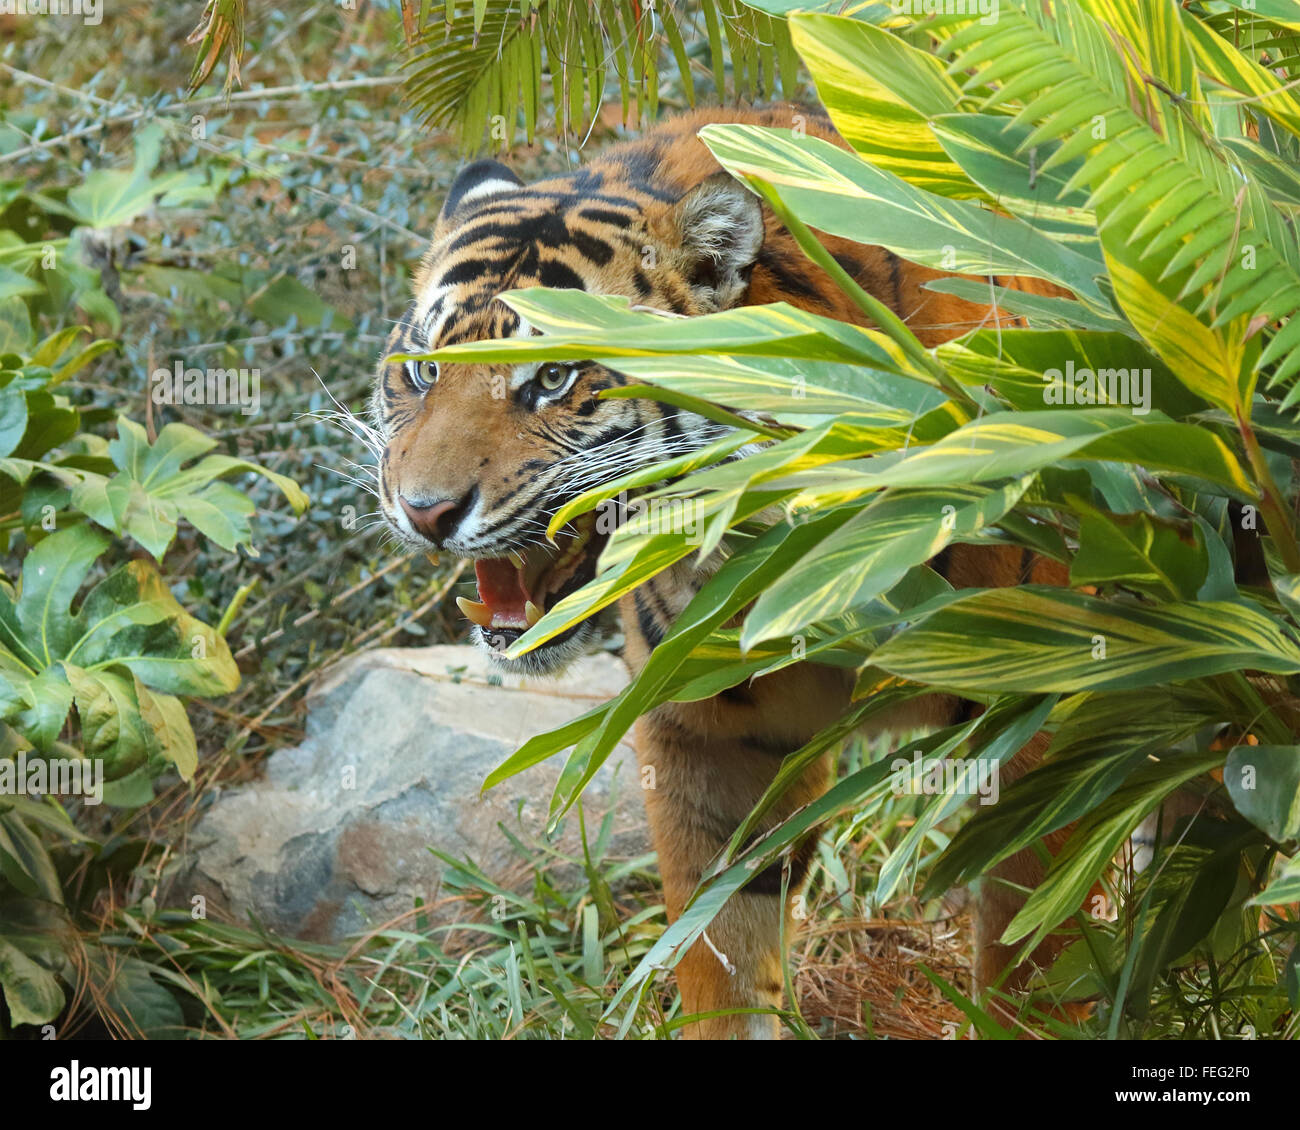 A Tiger growling from behind bushes. - Stock Image